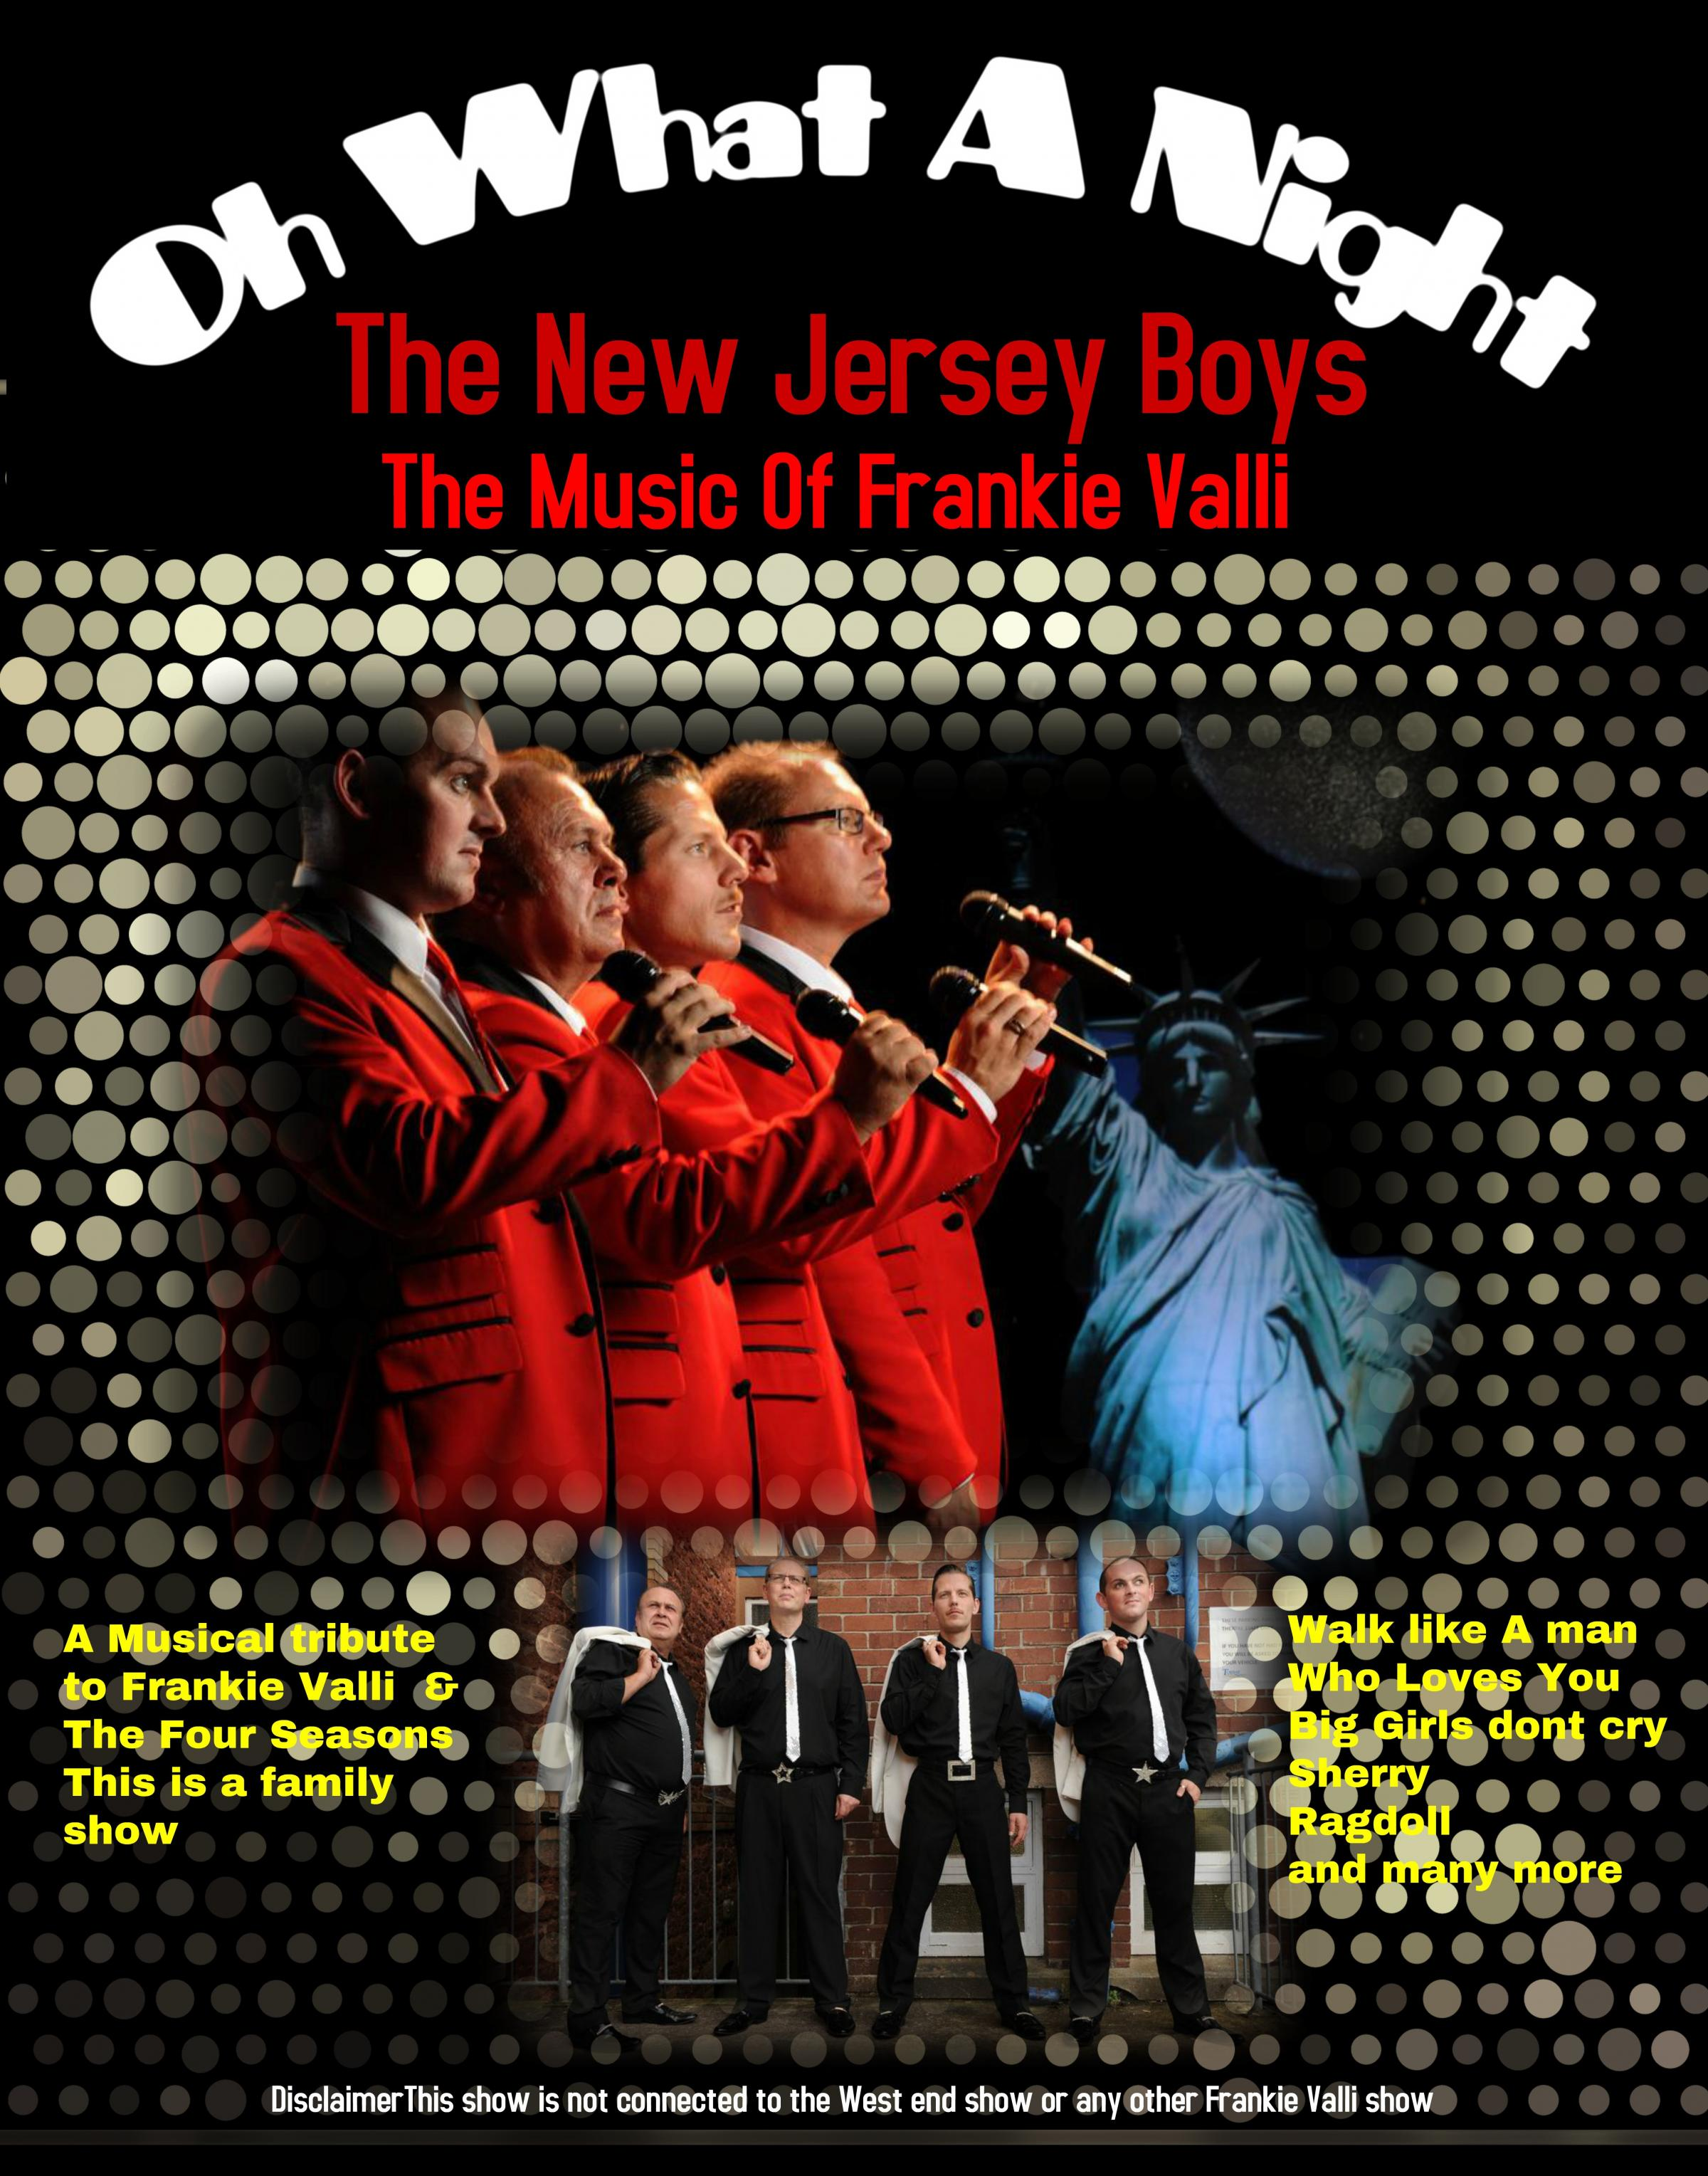 The New Jersey Boys – The Music of Frankie Valli